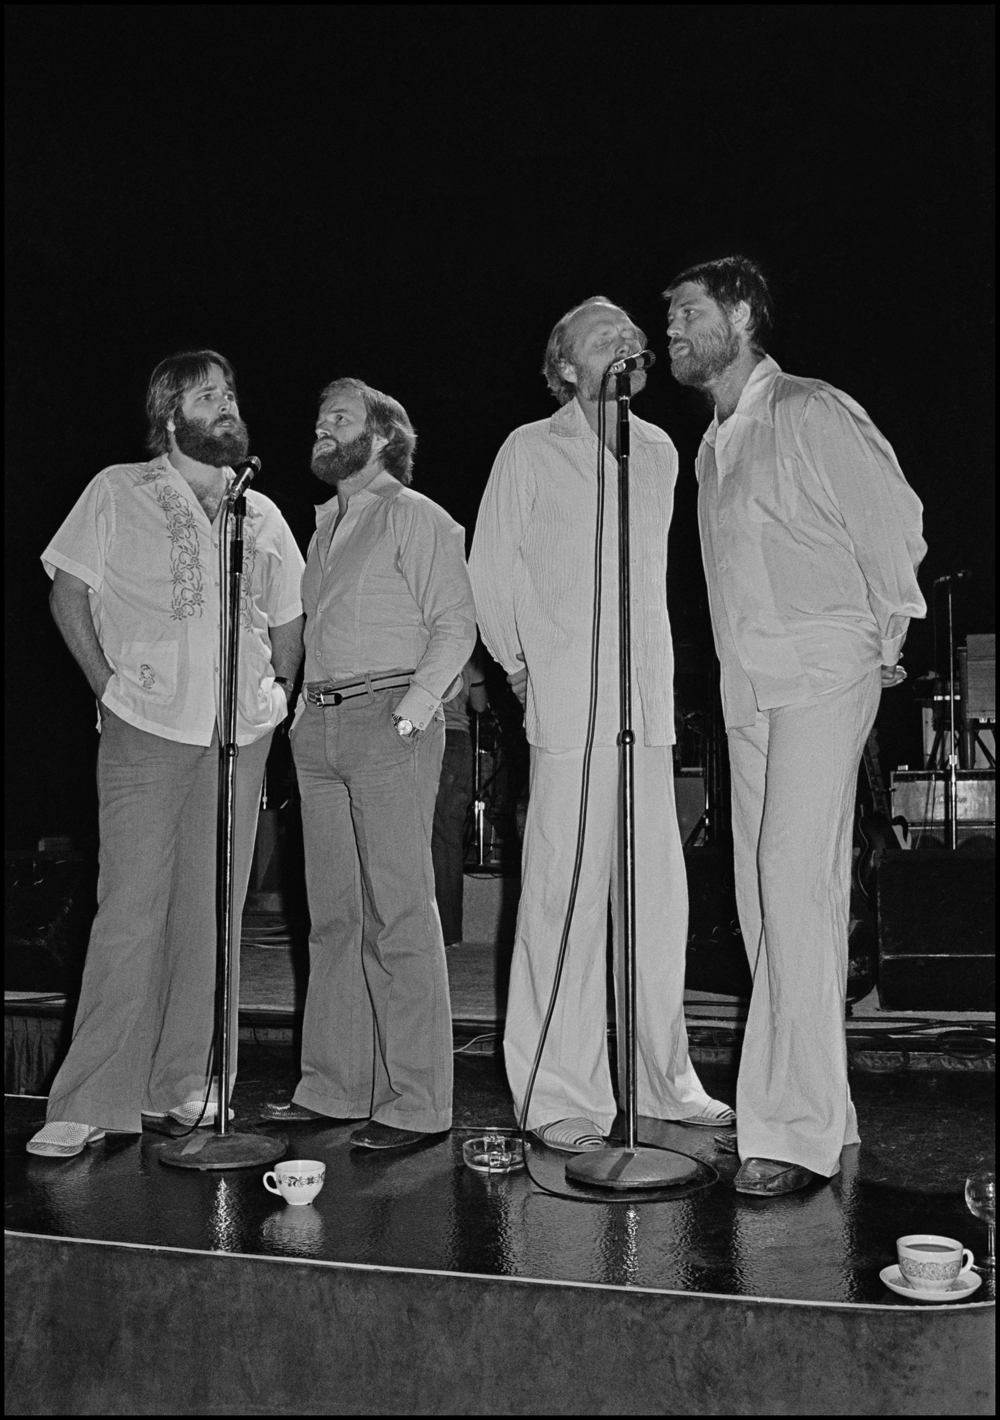 The Beach Boys - Dorchester Hotel 1977  You could describe my life as pure luck, not in getting the picture each time, that part was relatively easy, but just in terms of who I got to see and the circumstances under which saw them. This photo definitely comes into that category.   Back in the 70's the Record Companies were flush with cash and were happy spending it on themselves. CBS took this to the extreme with their Annual Conventions, these multi day events consisted of flying hundreds of Record Co Execs to some exotic location and then have their best Artists perform for them, Bruce Springsteen played the 1975 one in New Orleans. In 1977 they had it in London, on the morning of the first day Elvis Costello started busking on the street outside the Grosvenor Park Hotel, his hope was to get the attention of the CBS people, instead he became a person of interest to the Police and got arrested. Luckily he got out of jail in time to play Dingwalls later that night.  The highlight of the Convention was a performance by the Beach Boys on the final night. I was pretty good at sneaking into places unnoticed and so, along with my friend Kevin, we slipped into the Ballroom via the service entrance in mid afternoon. I did not know if we would see anything but it was worth a try. We were hiding behind piles of stacked chairs when the place started to get quite active. Then, in front of out star struck eyes, out came the Beach Boys to do a Soundcheck. Better yet, Brian Wilson was with them, he had not bern seen in public or performed with them since his breakdown and in NME land this was scoop central.   I stayed hidden for the first three numbers, behind Brian was his Doctor/Psychiatrist who would massage his shoulders between numbers, he also shouted out the words to the songs acting as a sort of full time prompter to the shell shocked looking Brian. Figuring that they might only do four songs I took my chance and darted out from my hiding place, I scurried to the front of the stage and took five very quick frames before running out of the Ballroom, thru the Hotel Lobby and out on to Park Lane.   I had my photo and nobody was going to take it away from me. After developing it I noticed the two teacups on the floor in front of their feet. To me it really adds to the impact of the image by adding just a hint of the surreal to it. As I said I was really fucking lucky, I really did have the best job in the world...